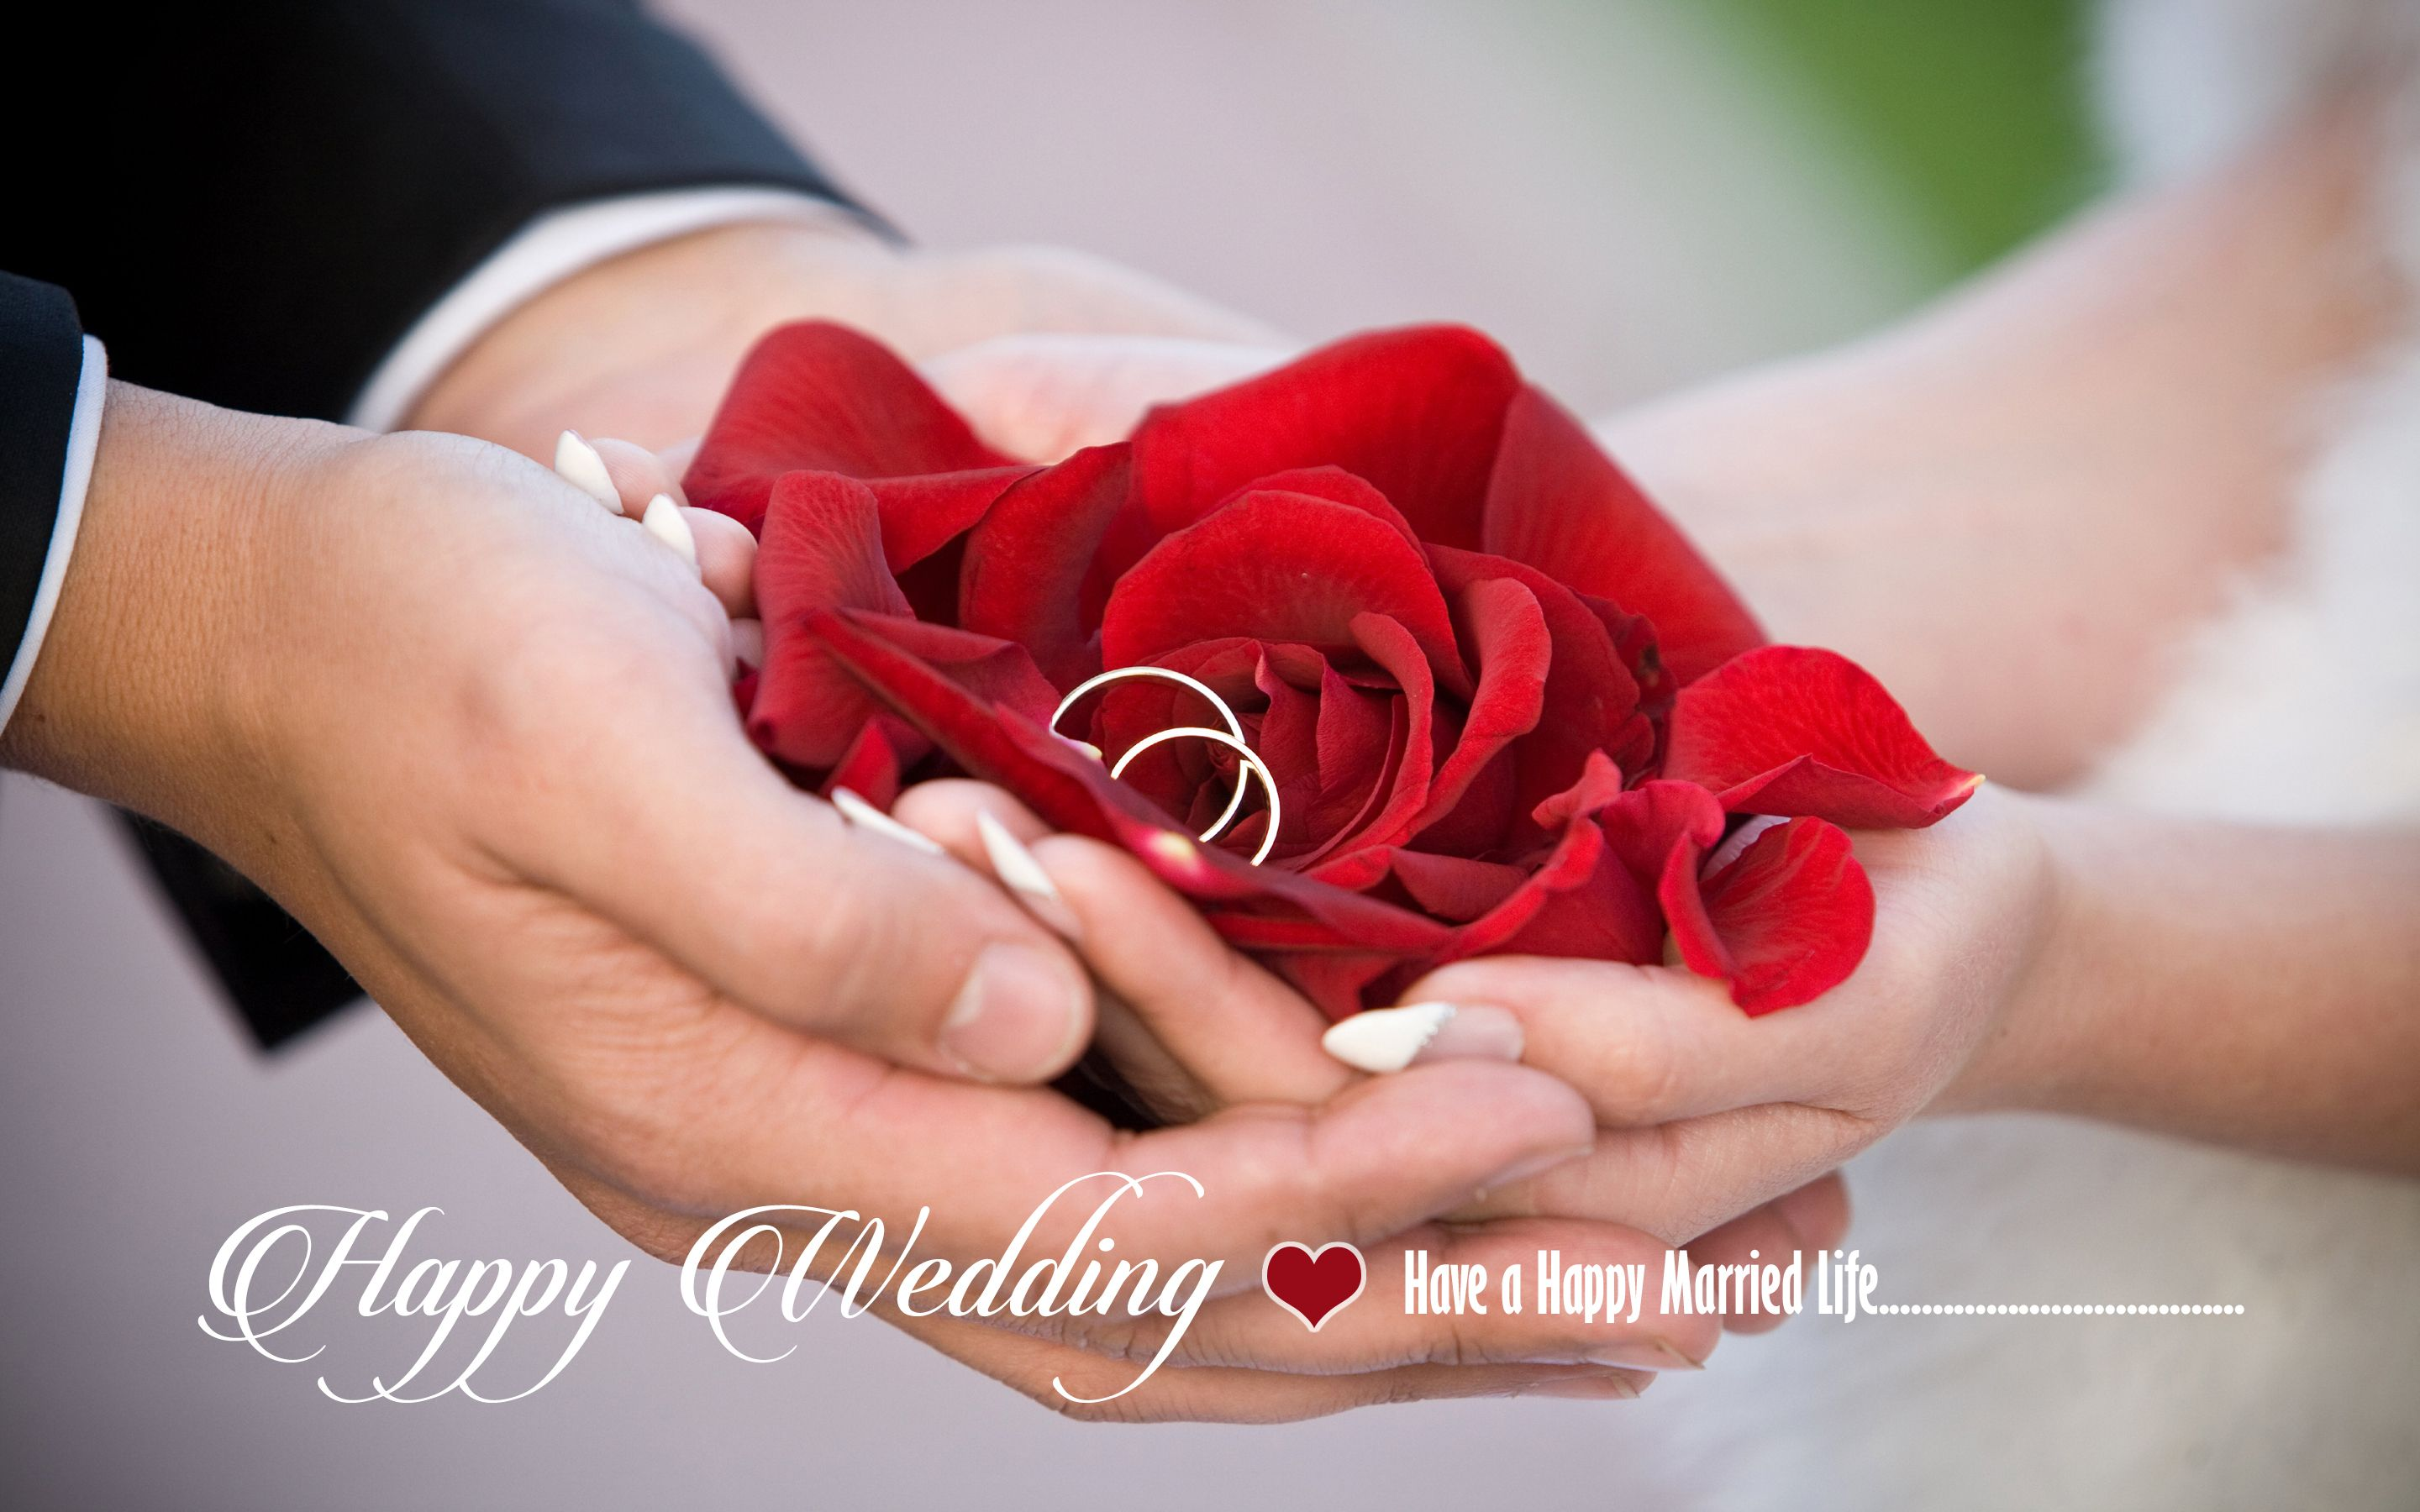 Happy Wedding Wishes Hd Wallpaper Happy Wedding Wishes Wallpaper